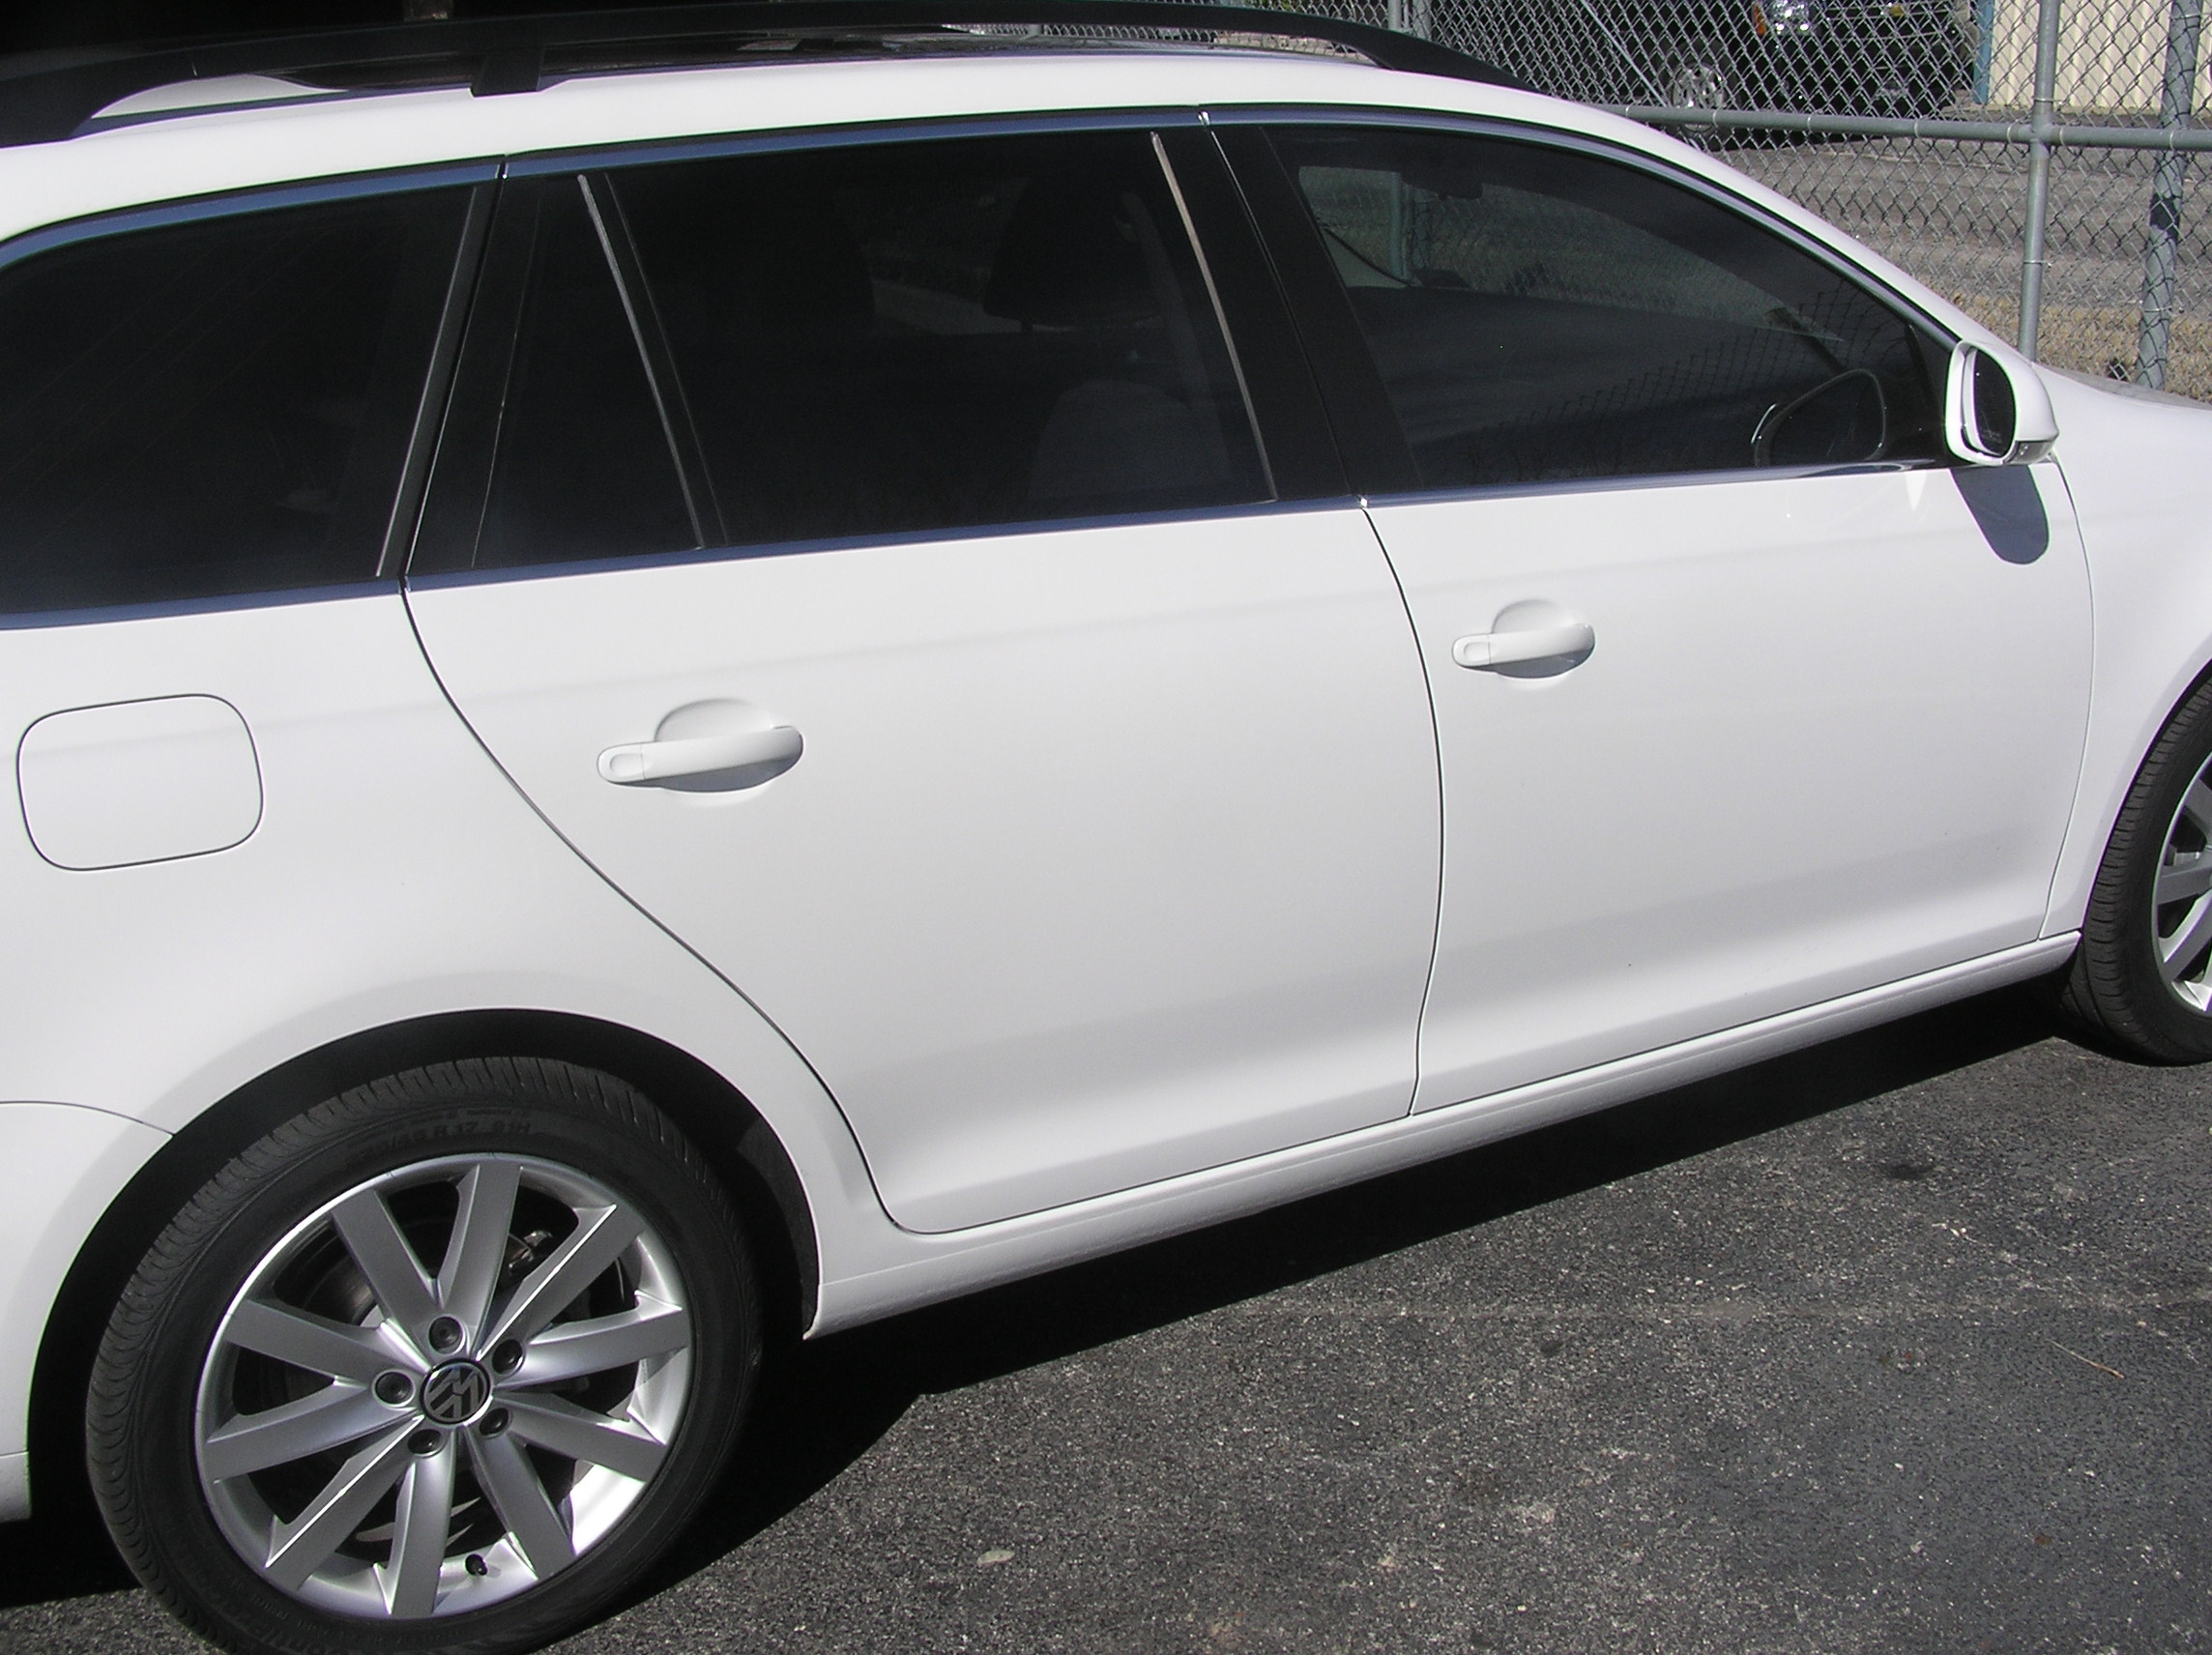 Sun tint automotive window tint for 15 window tint pictures